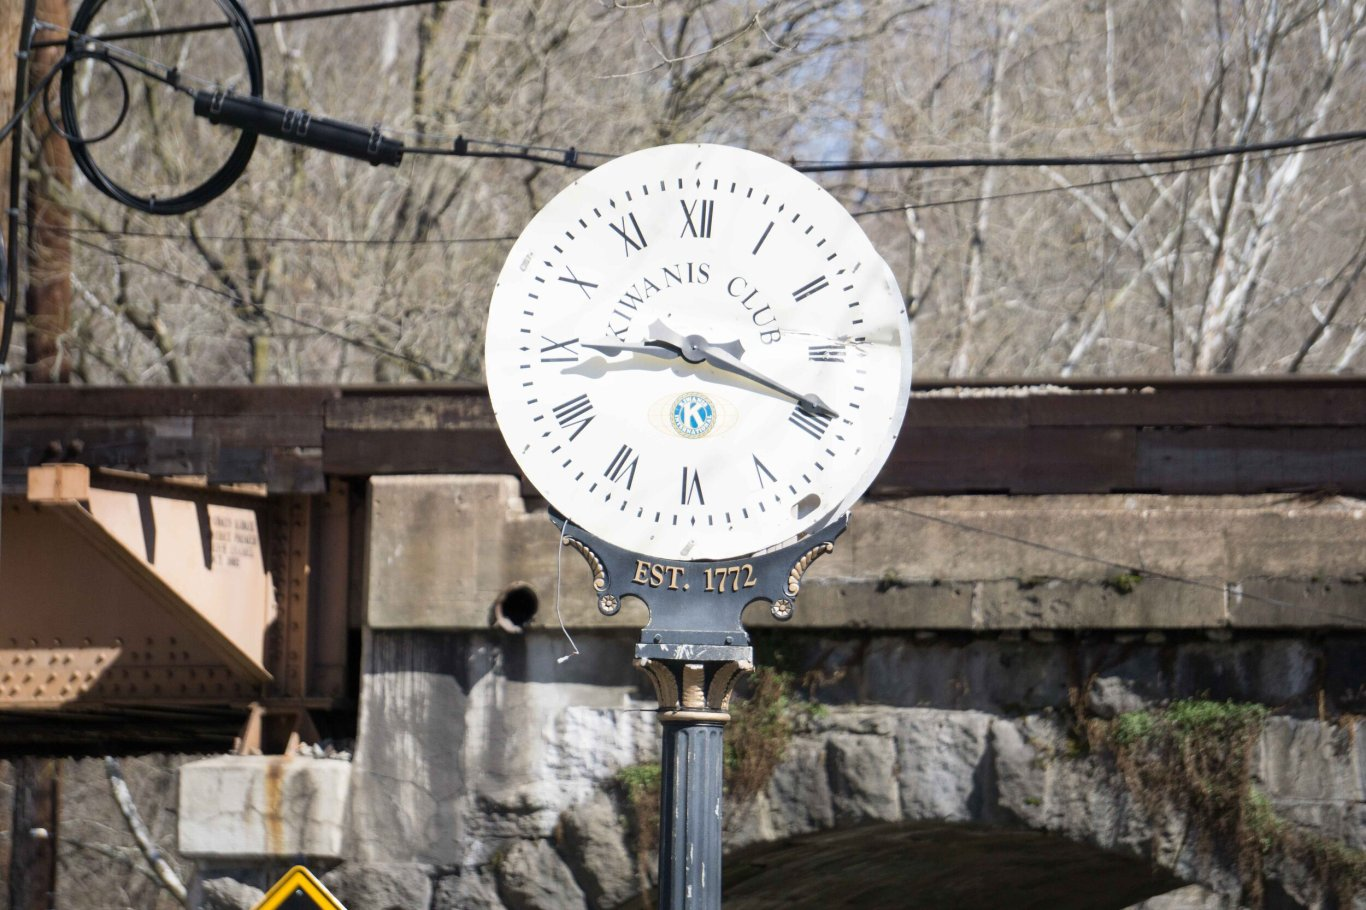 Ellicott City Clock, 3/8/2017